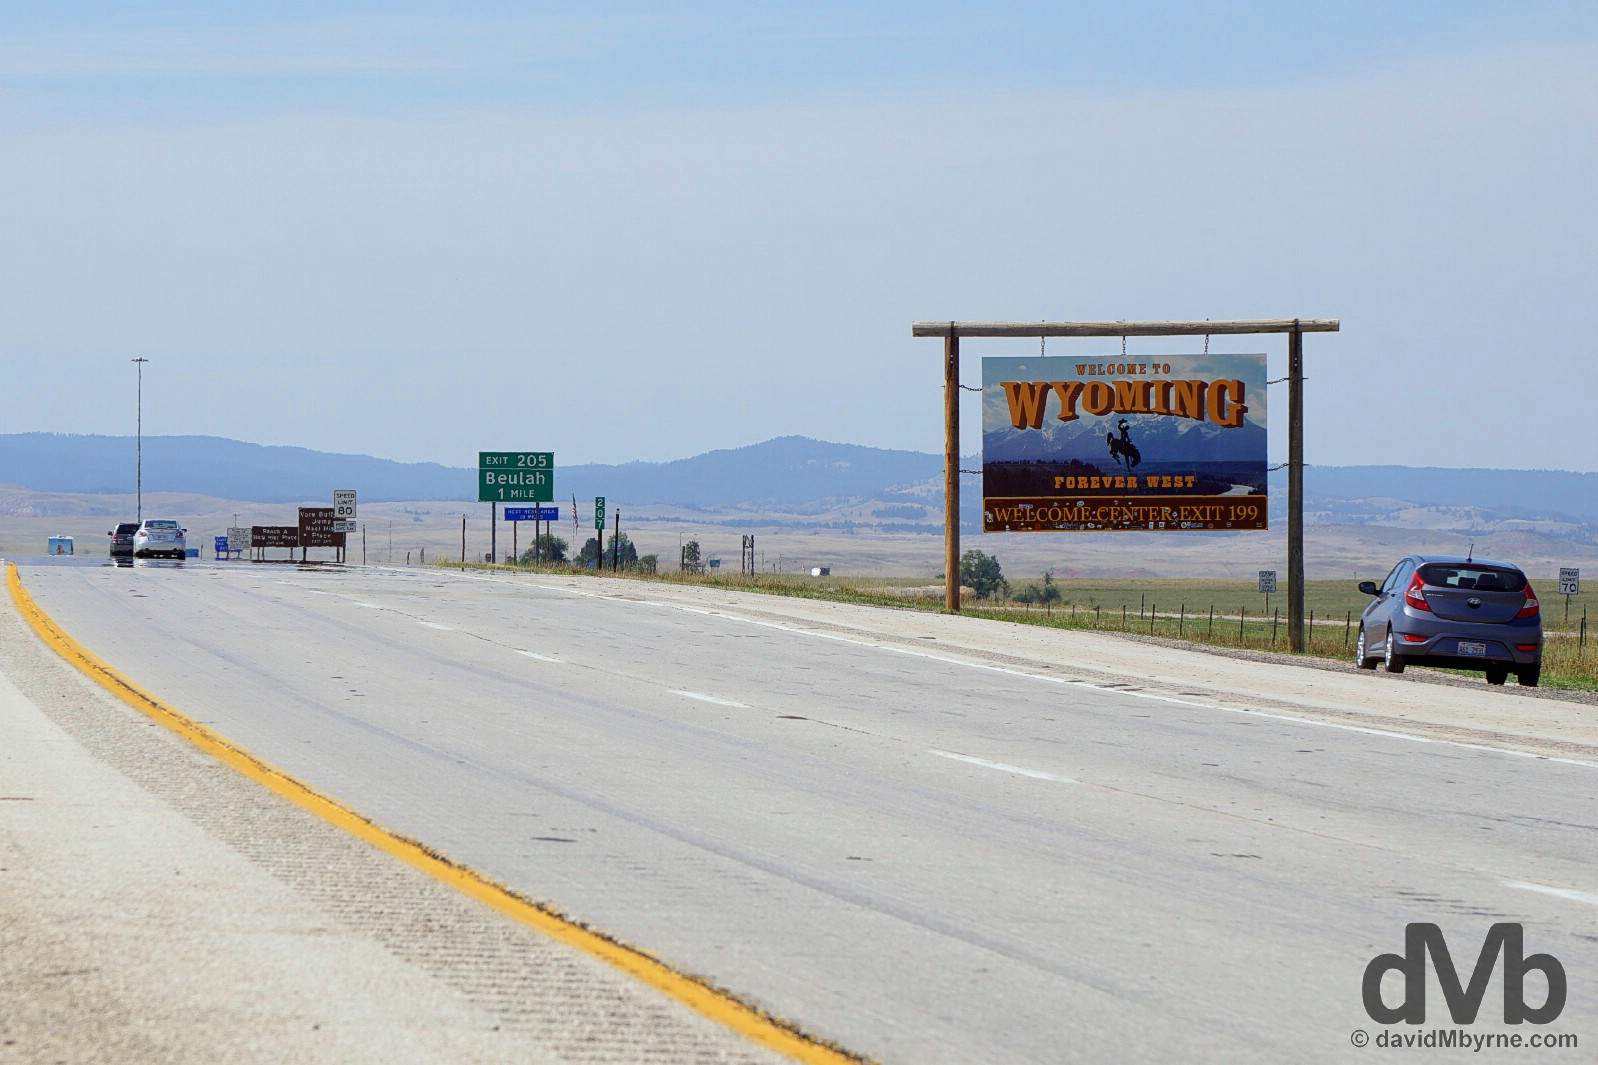 At the 'Welcome to Wyoming' sign on the South Dakota-Wyoming state line, Interstate 90, USA. September 3, 2016.